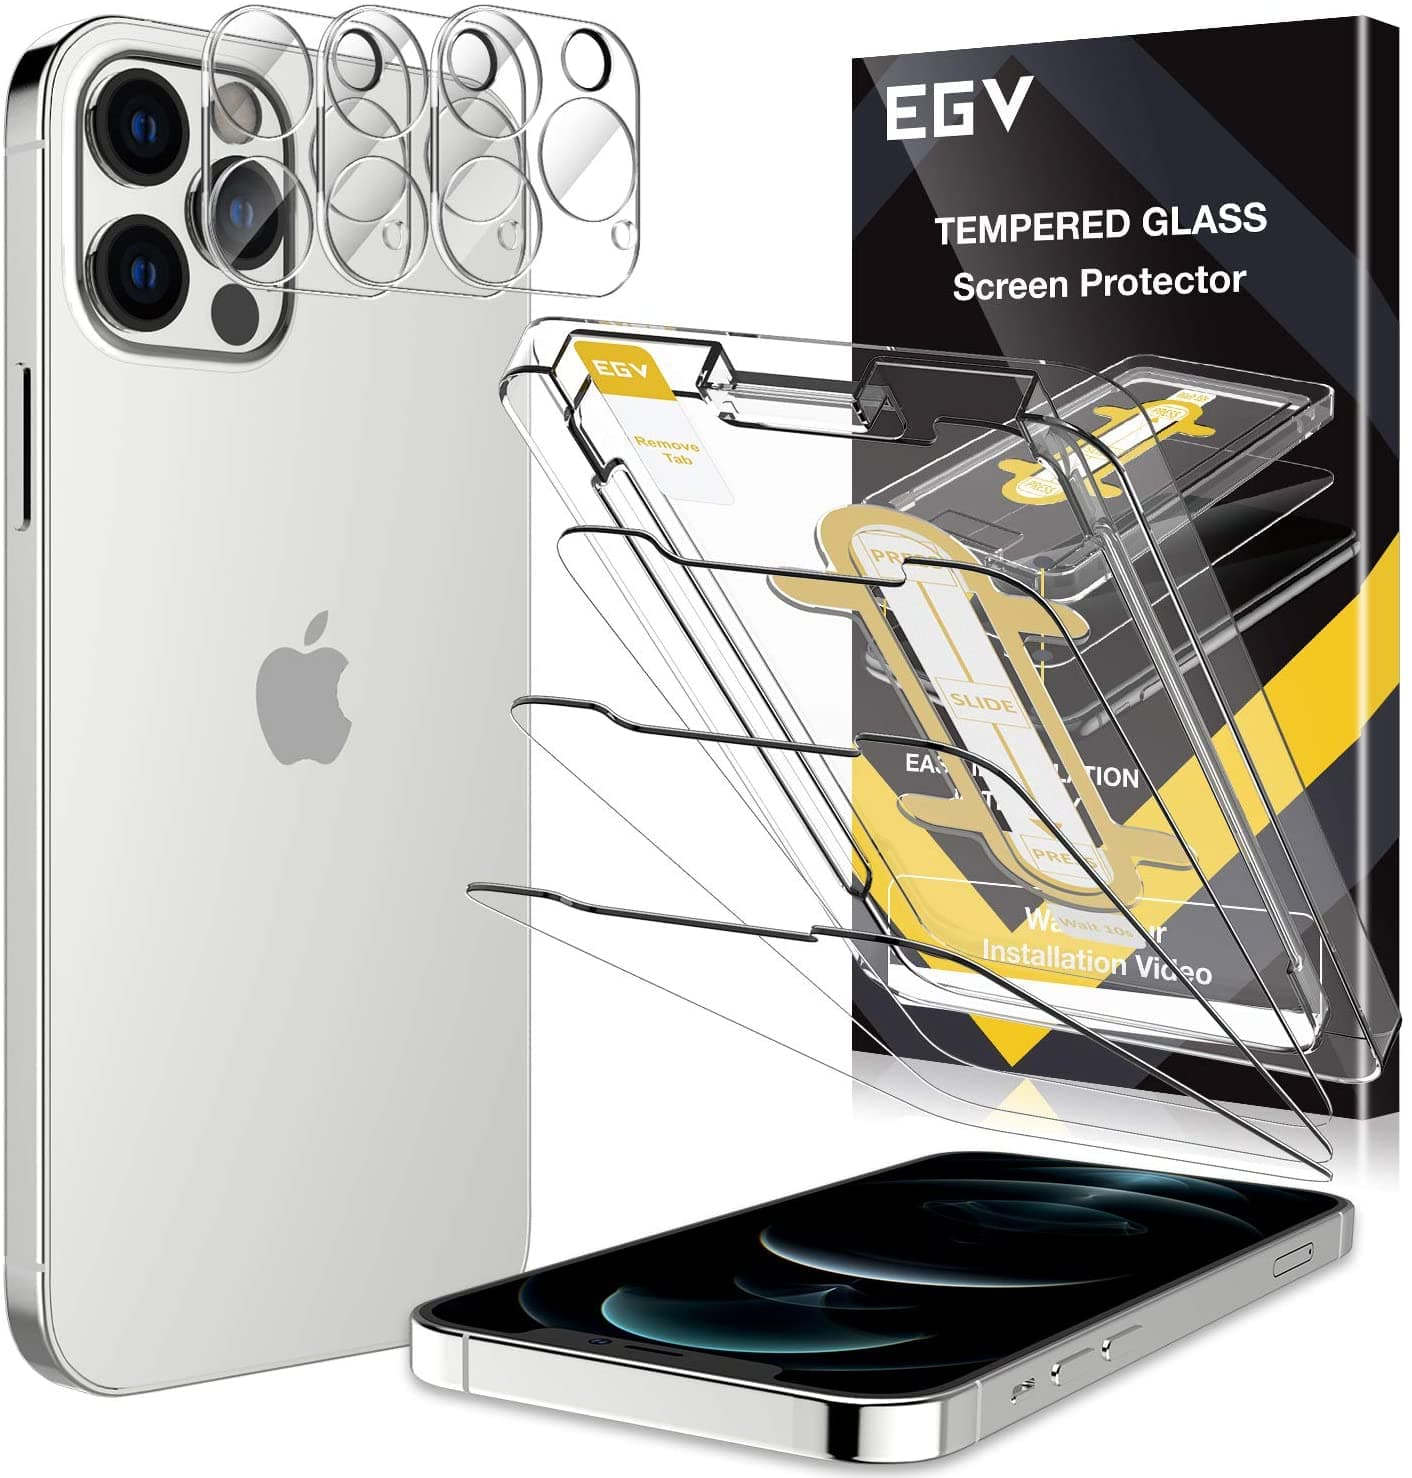 Amazon.com: 6 Pack EGV 3pcs Screen Protector & 3pcs Camera Lens Protector Compatible with iPhone 12 Pro 5G 6.1-inch, 9H Hardness Tempered Glass $6.99